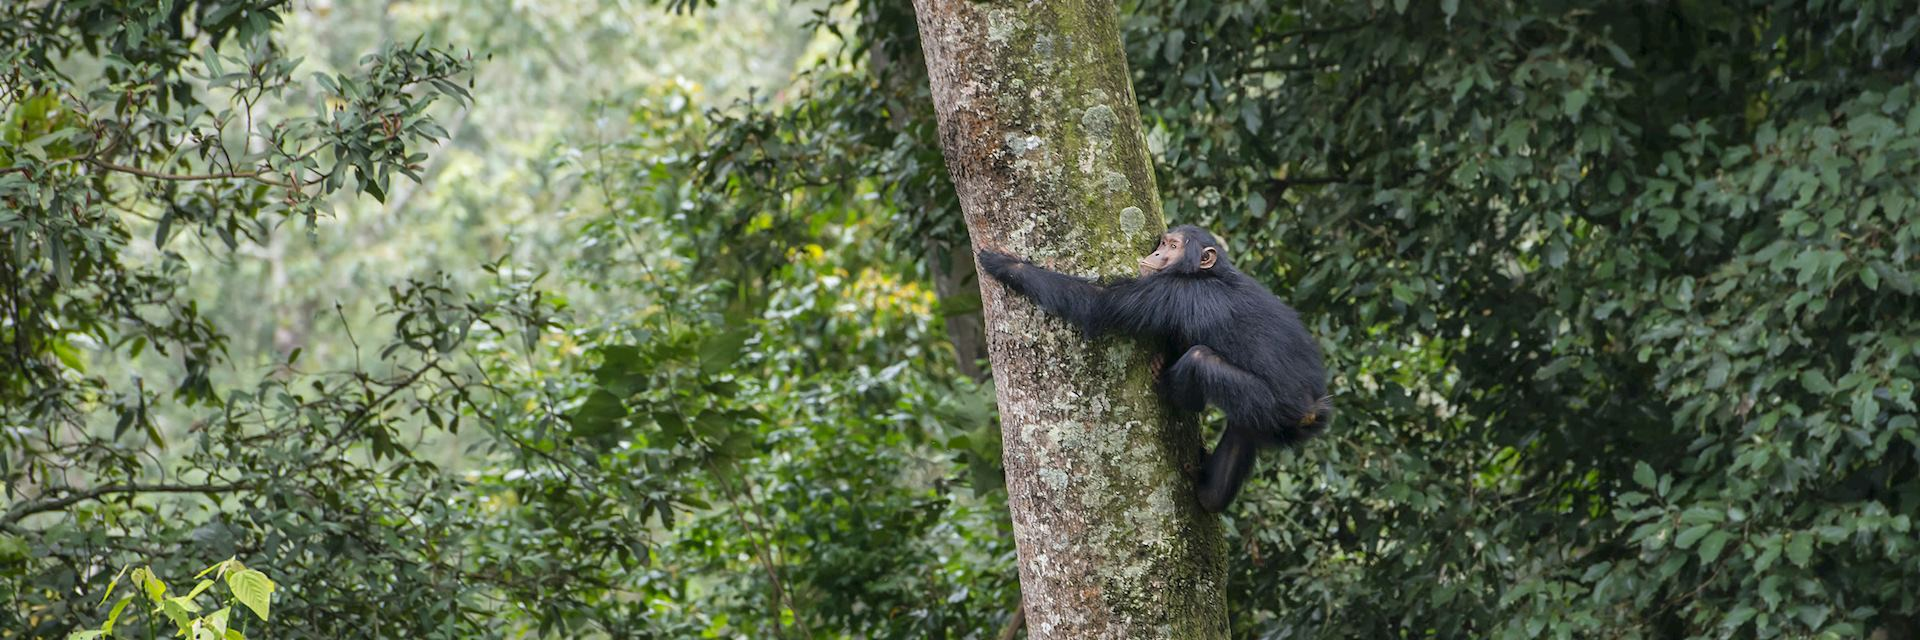 Chimpanzee in a tree, Nyungwe Forest